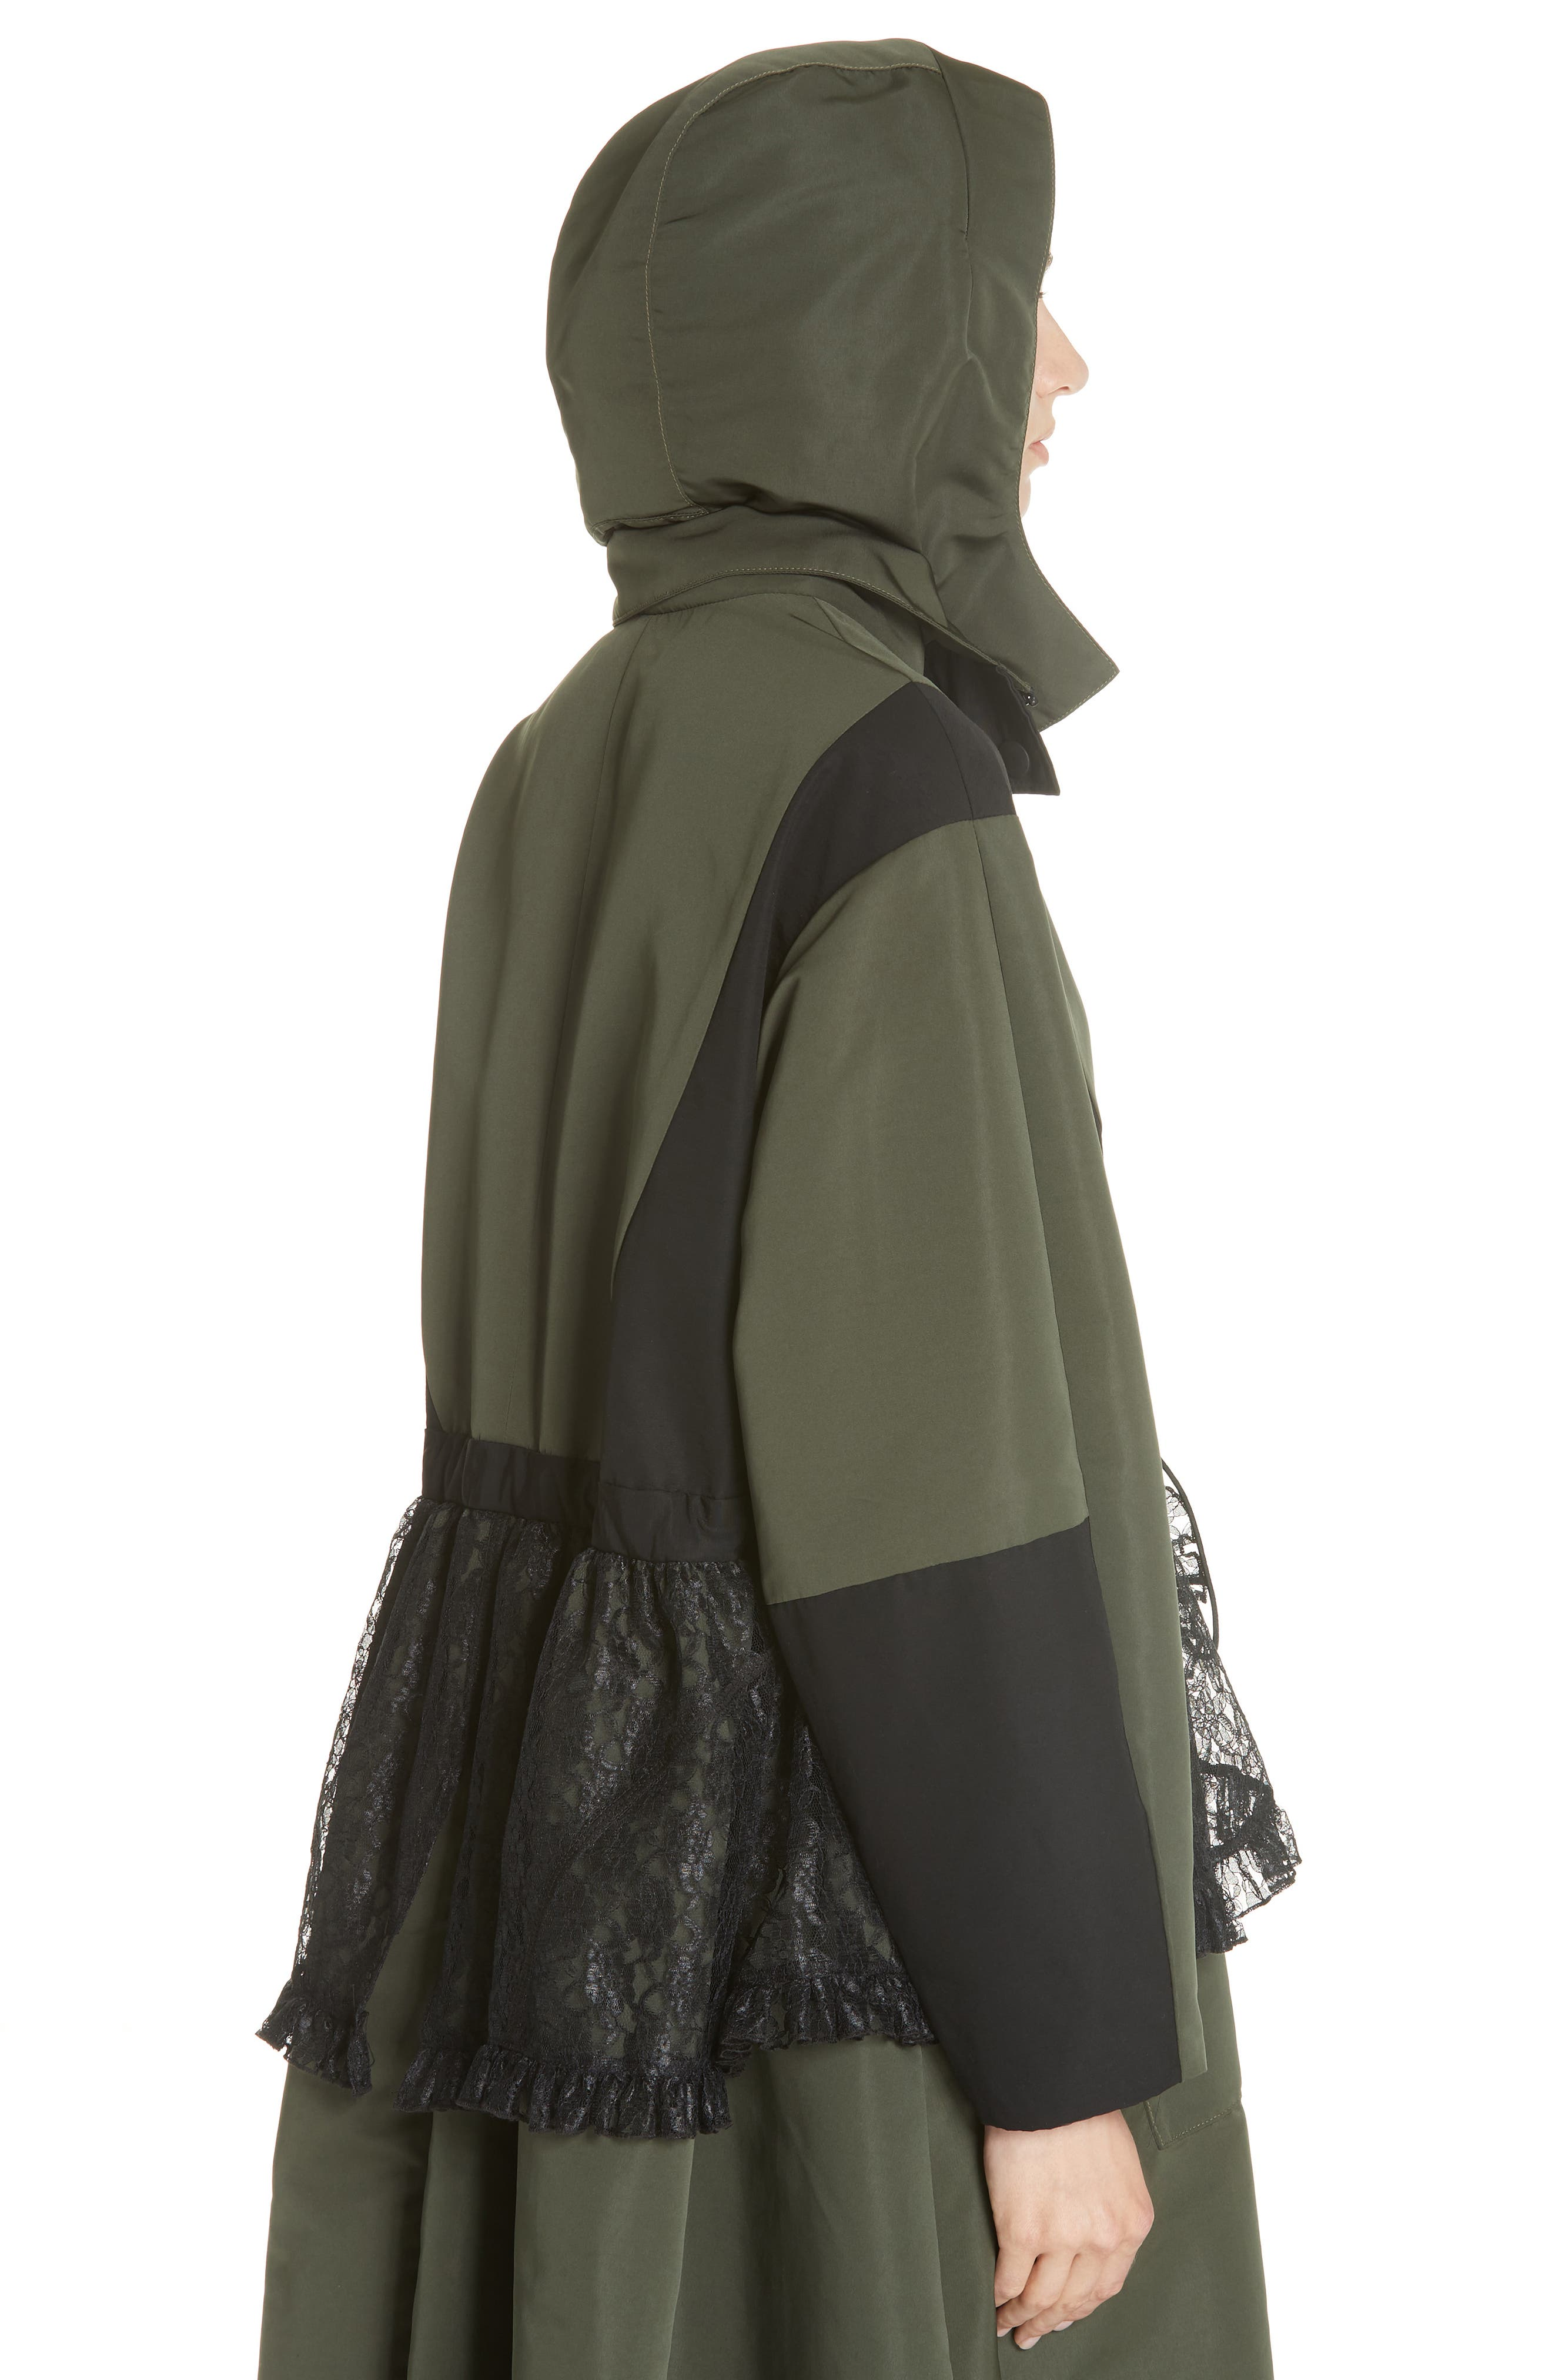 Lace Overlay Hooded Coat,                             Alternate thumbnail 6, color,                             OLIVE BLACK